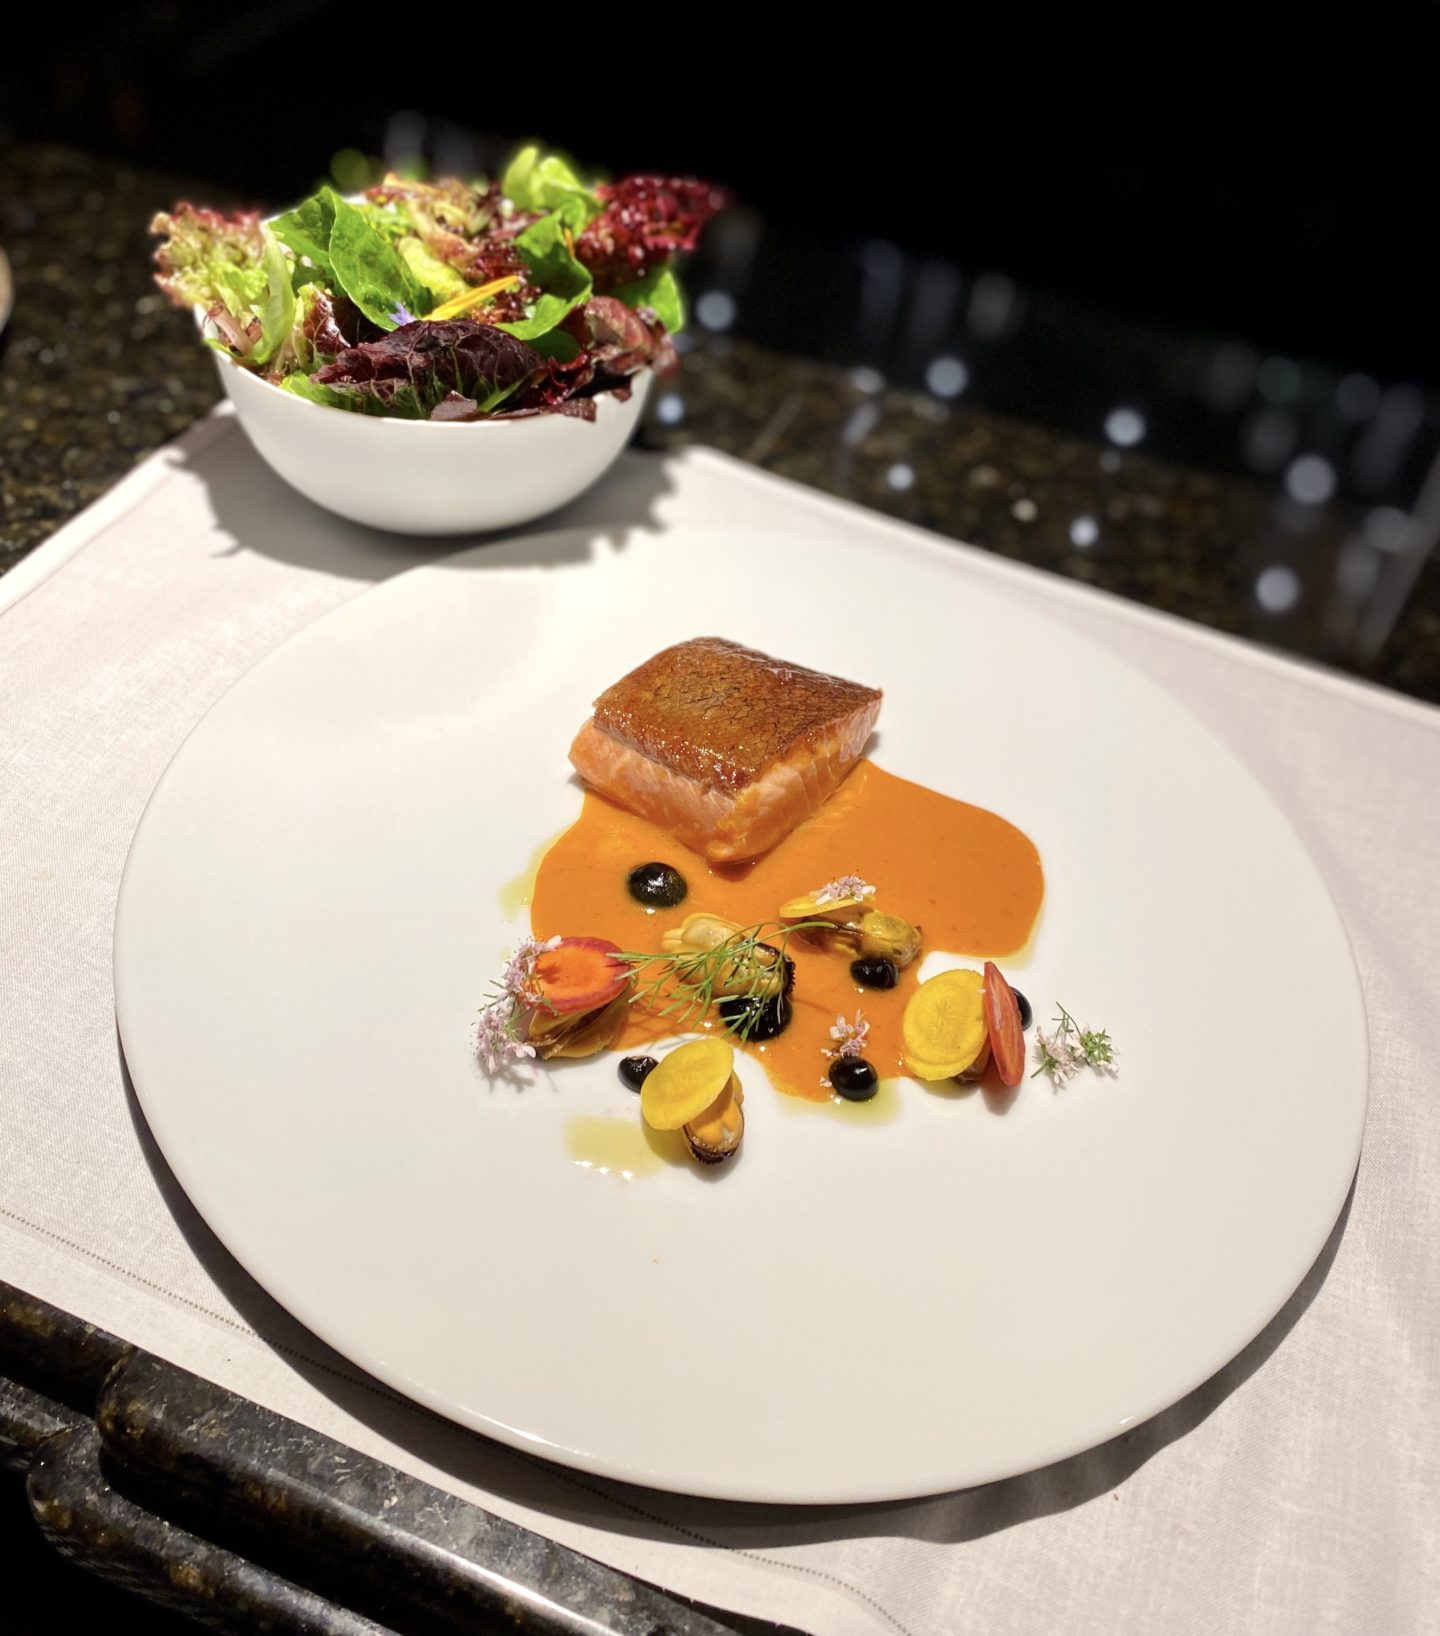 Loch Etive Sea Trout, Carrot, Mussel served with Tomnah'a Organic Leaf Salad.